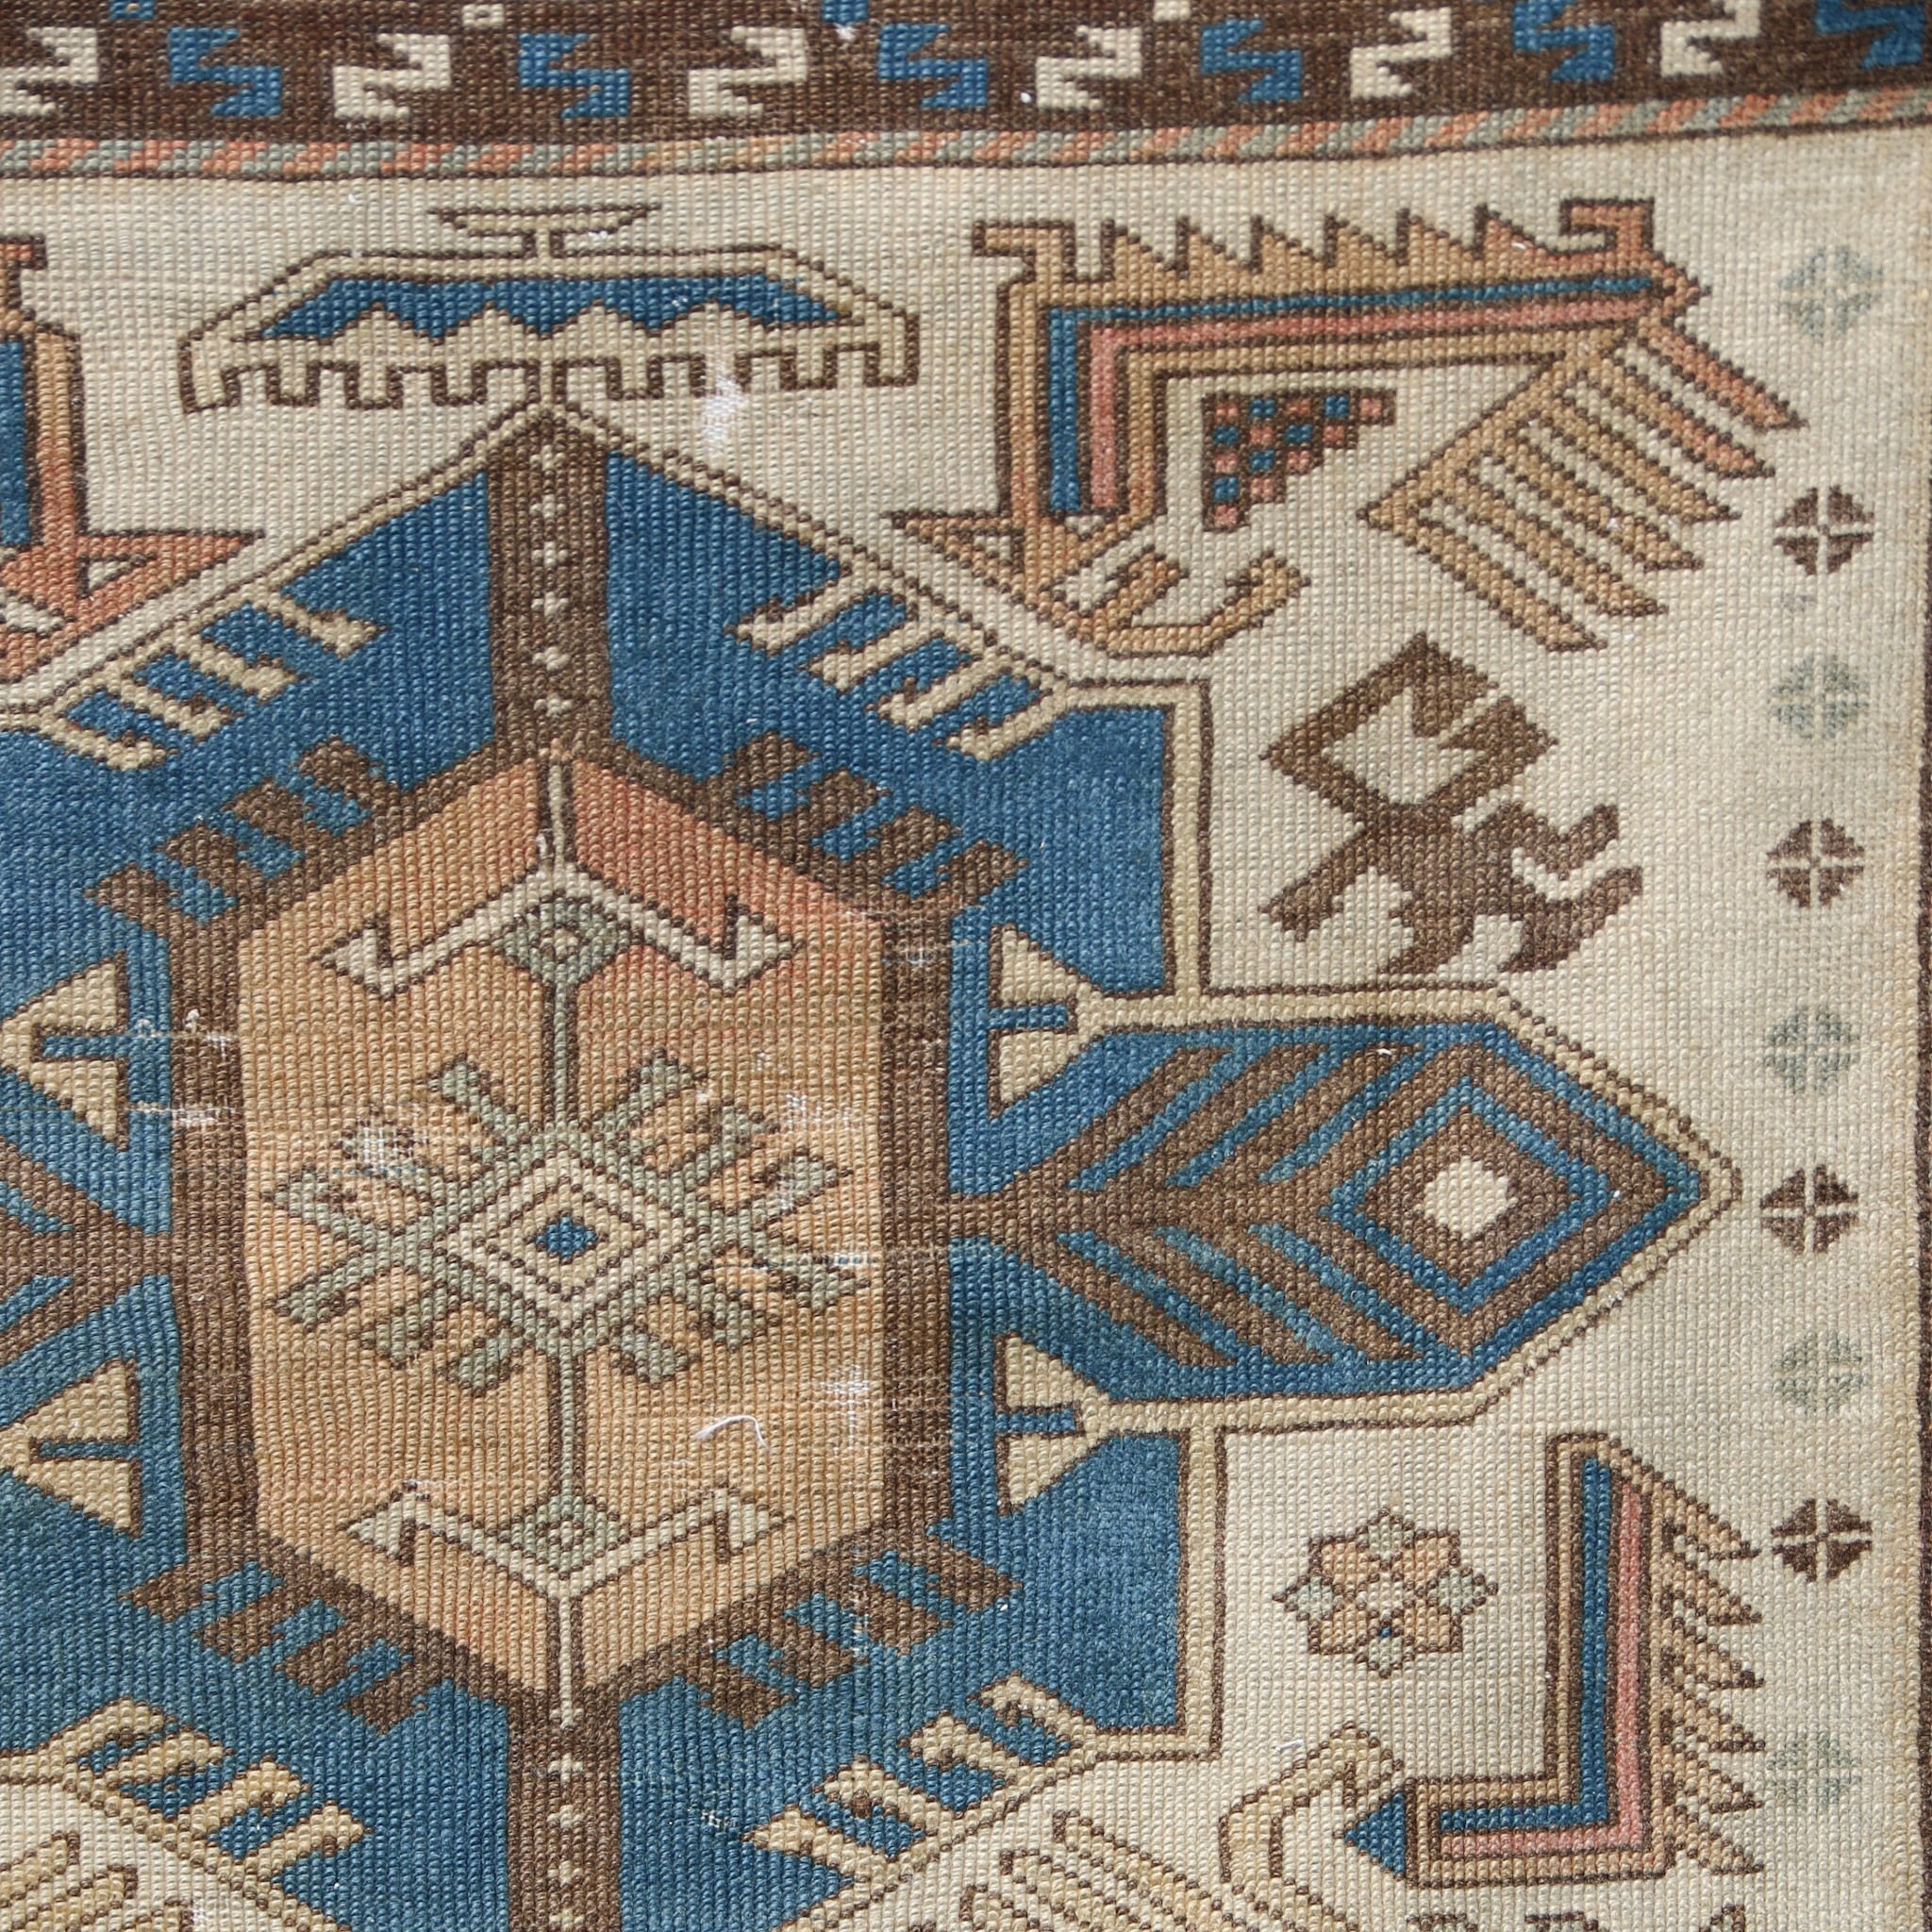 This handwoven vintage Turkish rug is a great neutral with blue accents. Kars.